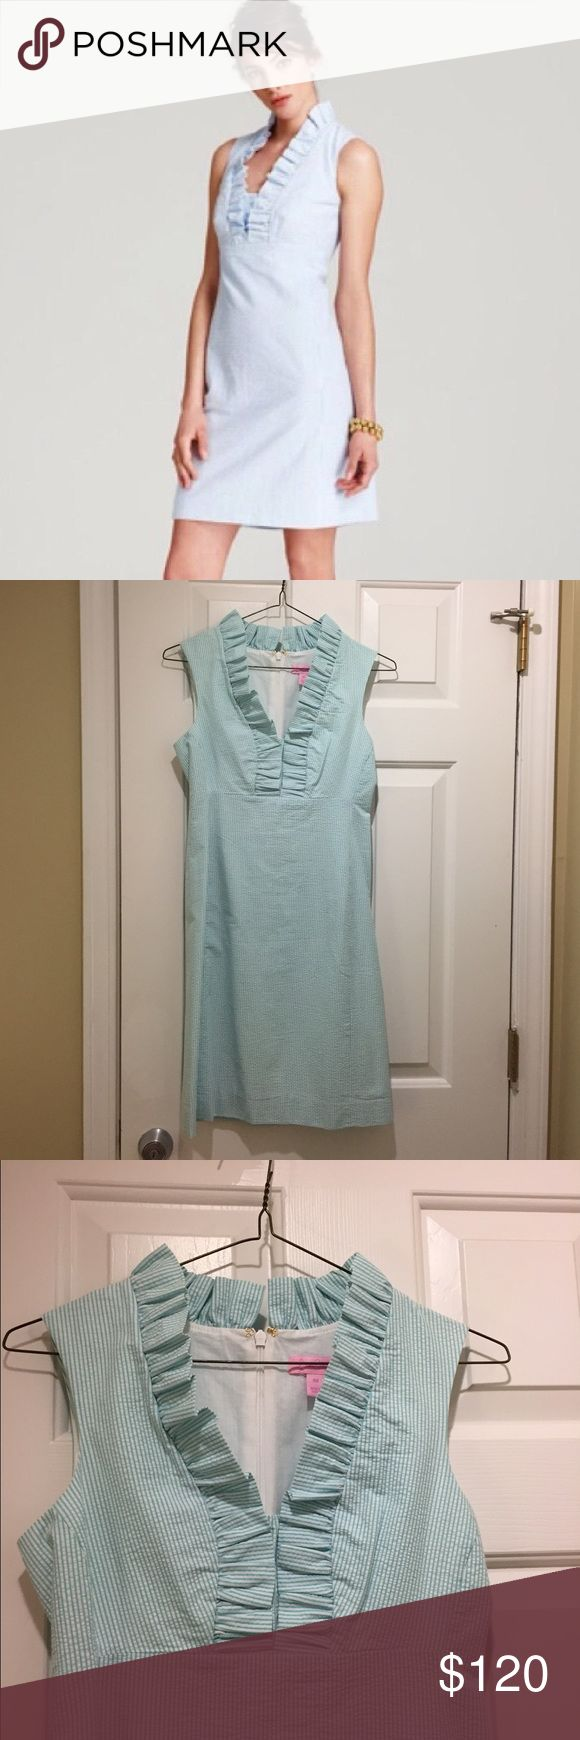 Lilly Pulitzer Adeline seersucker shift size 00 Aqua seersucker shift dress with ruffle detail. Adeline by Lilly Pulitzer. Size 00. Worn once on my honeymoon. Great for spring or summer weddings or at the beach! Lilly Pulitzer Dresses Mini